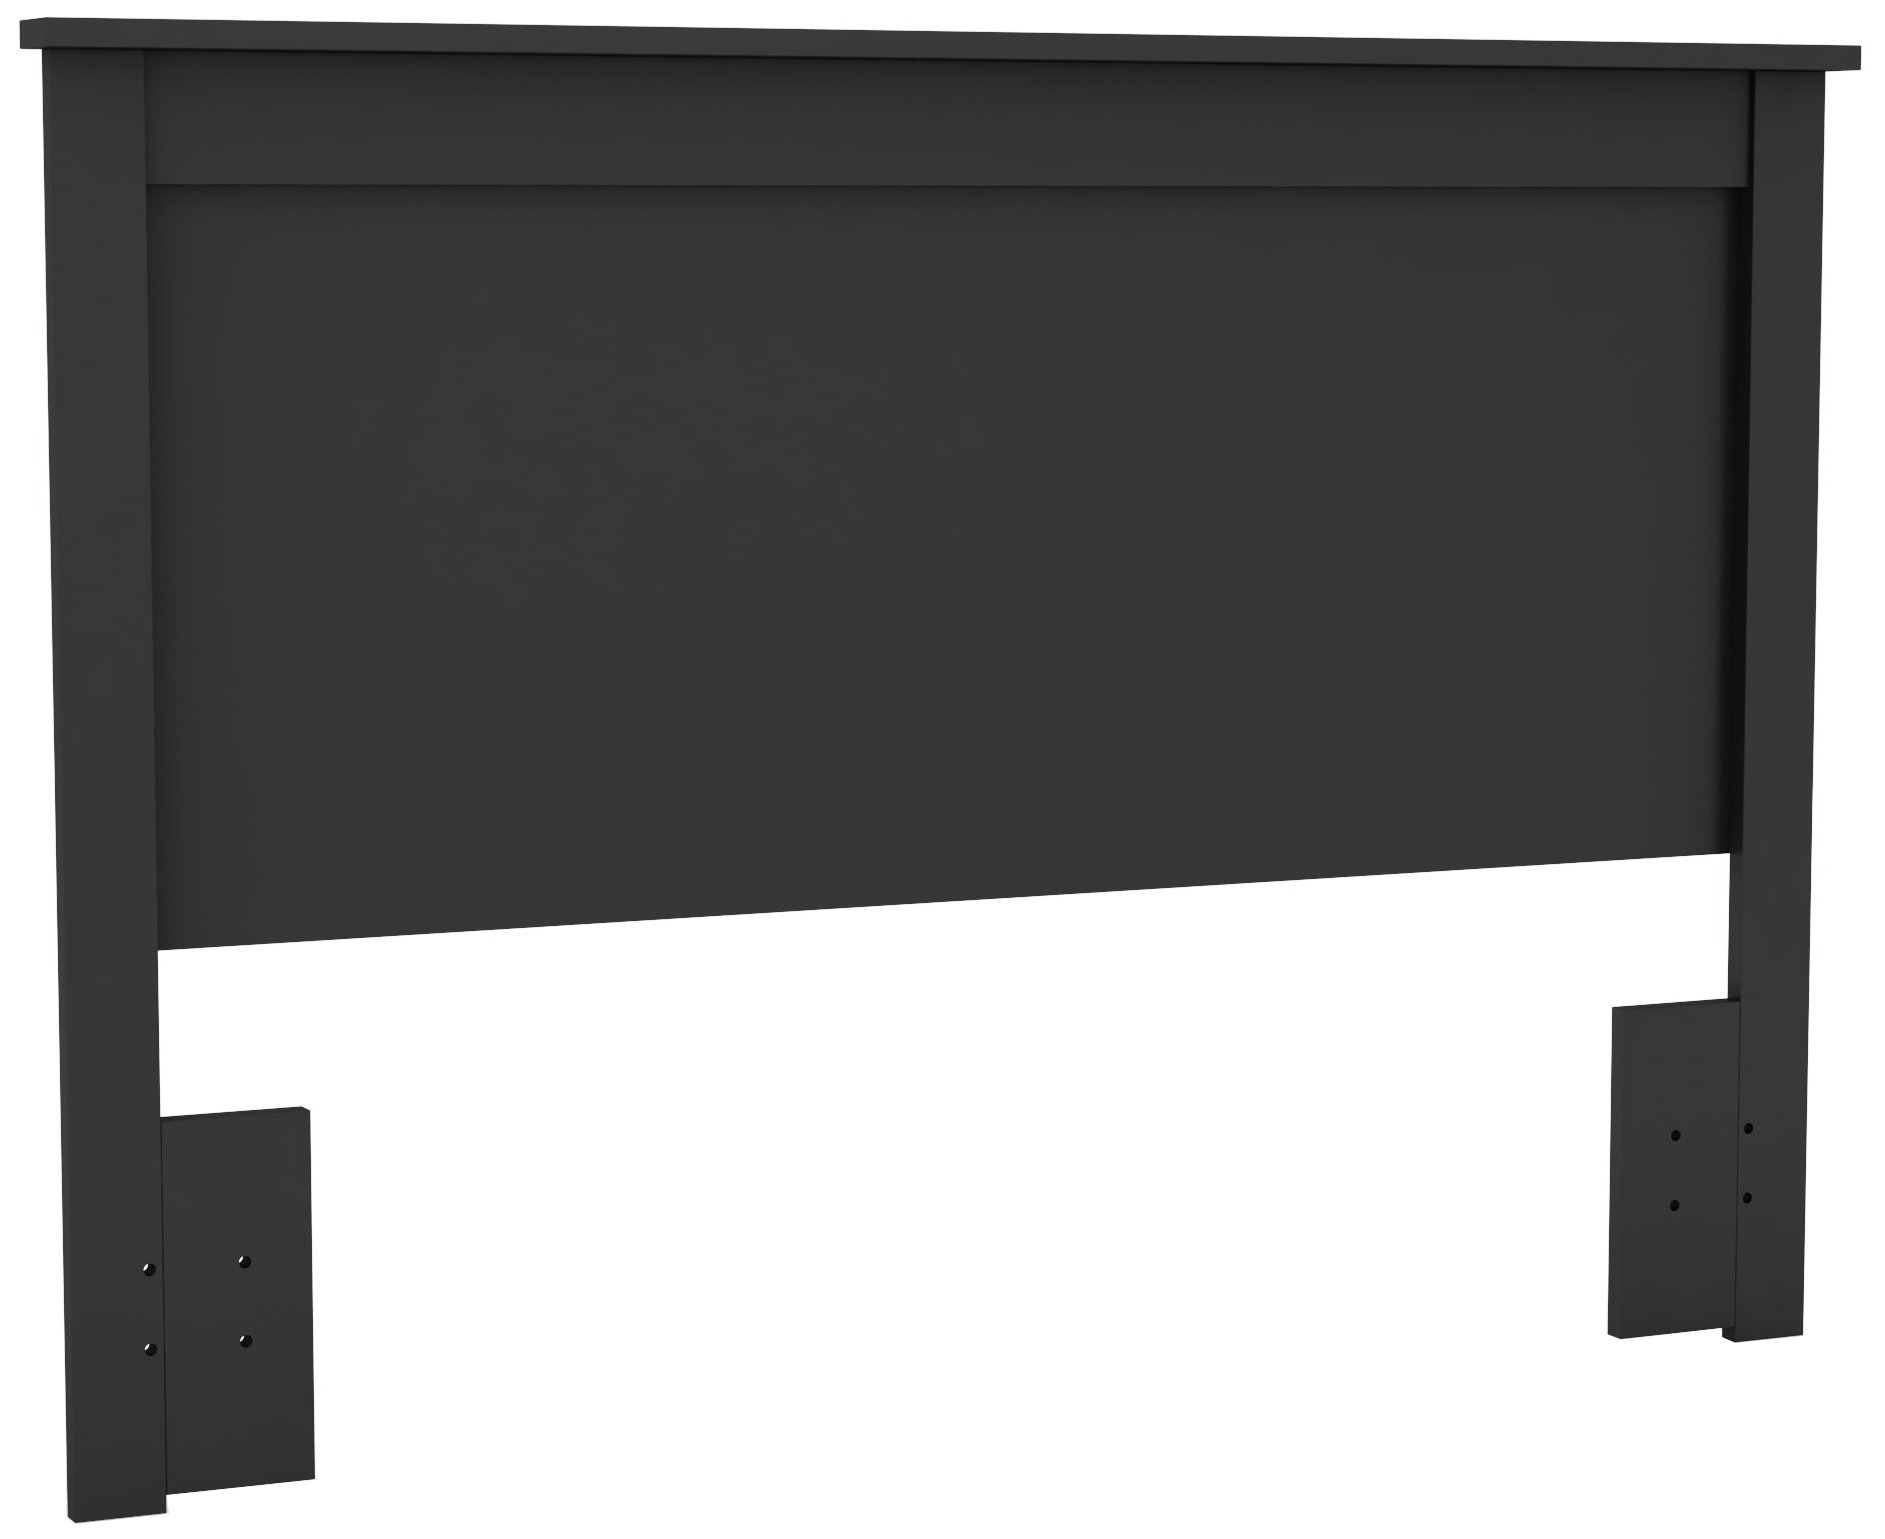 South Shore Vito Headboard Full/Queen, 54/60-Inch, Black